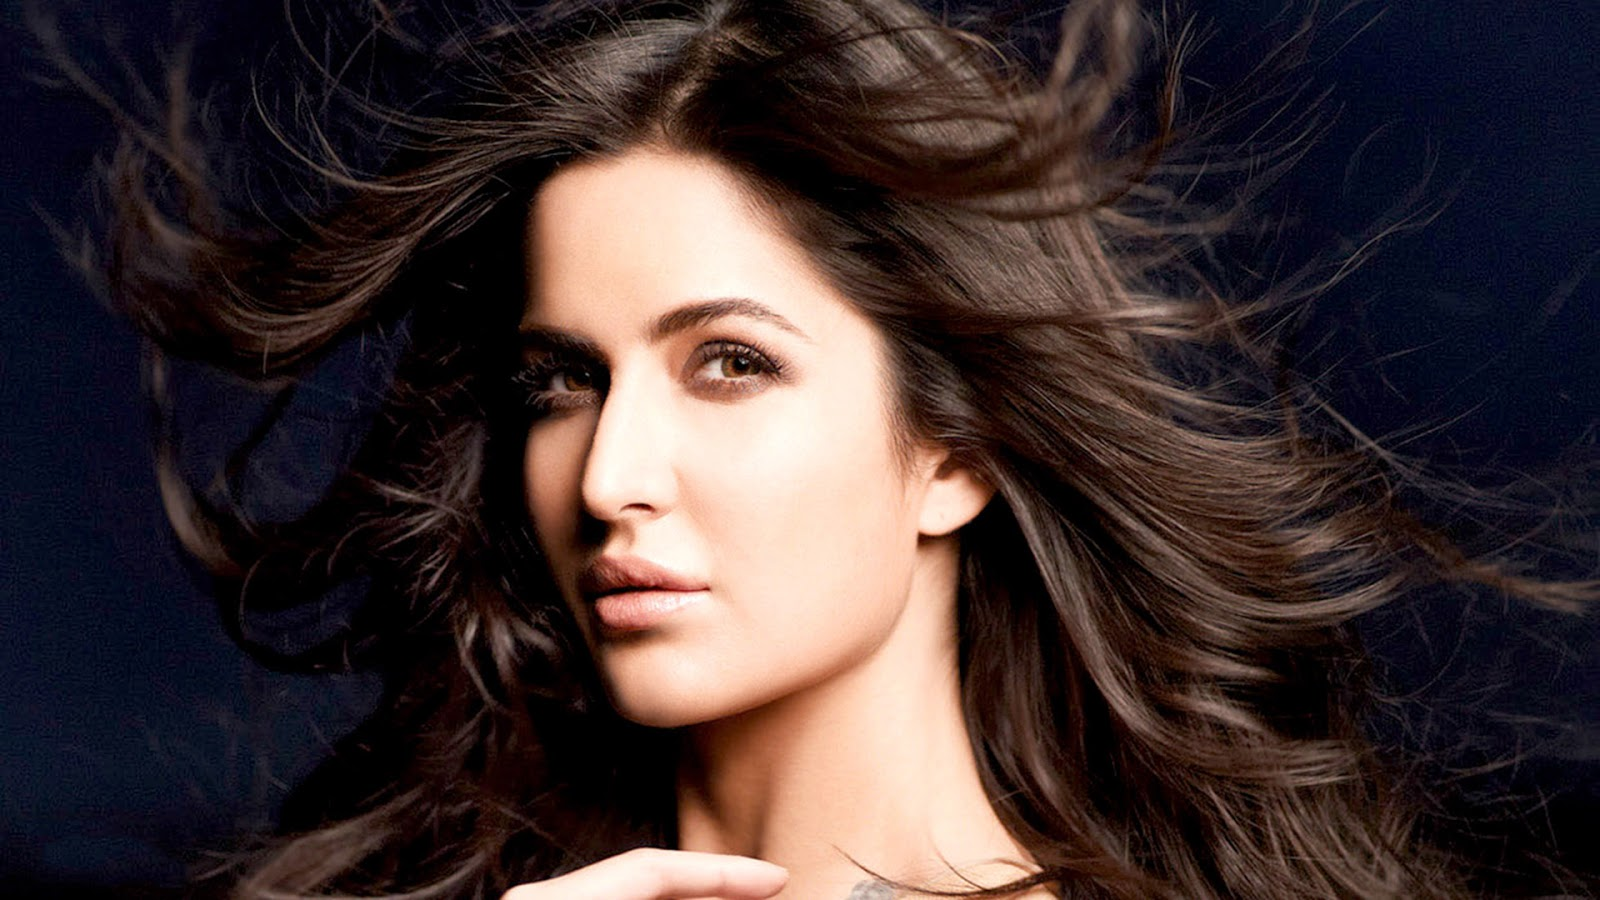 katrina kaif wallpapers hd download free 1080p